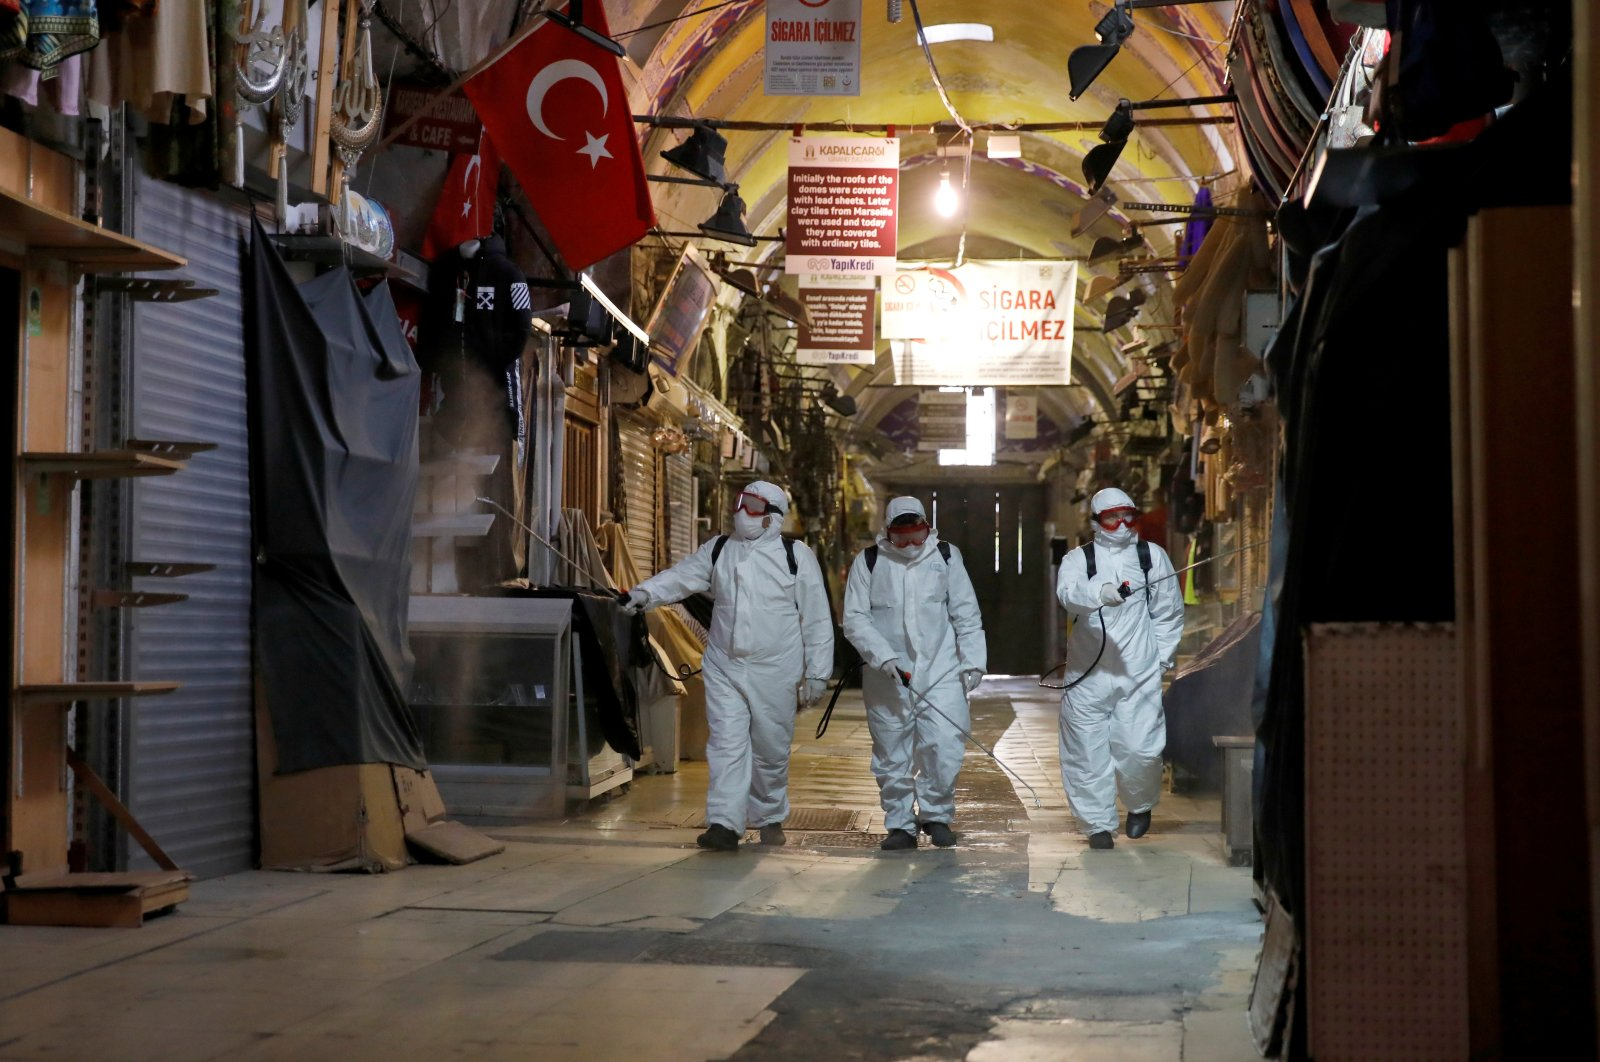 Workers in protective suits spray disinfectant at the Grand Bazaar to prevent the spread of the coronavirus disease (COVID-19), Istanbul, Turkey, Wednesday, March 25, 2020. (Reuters Photo)